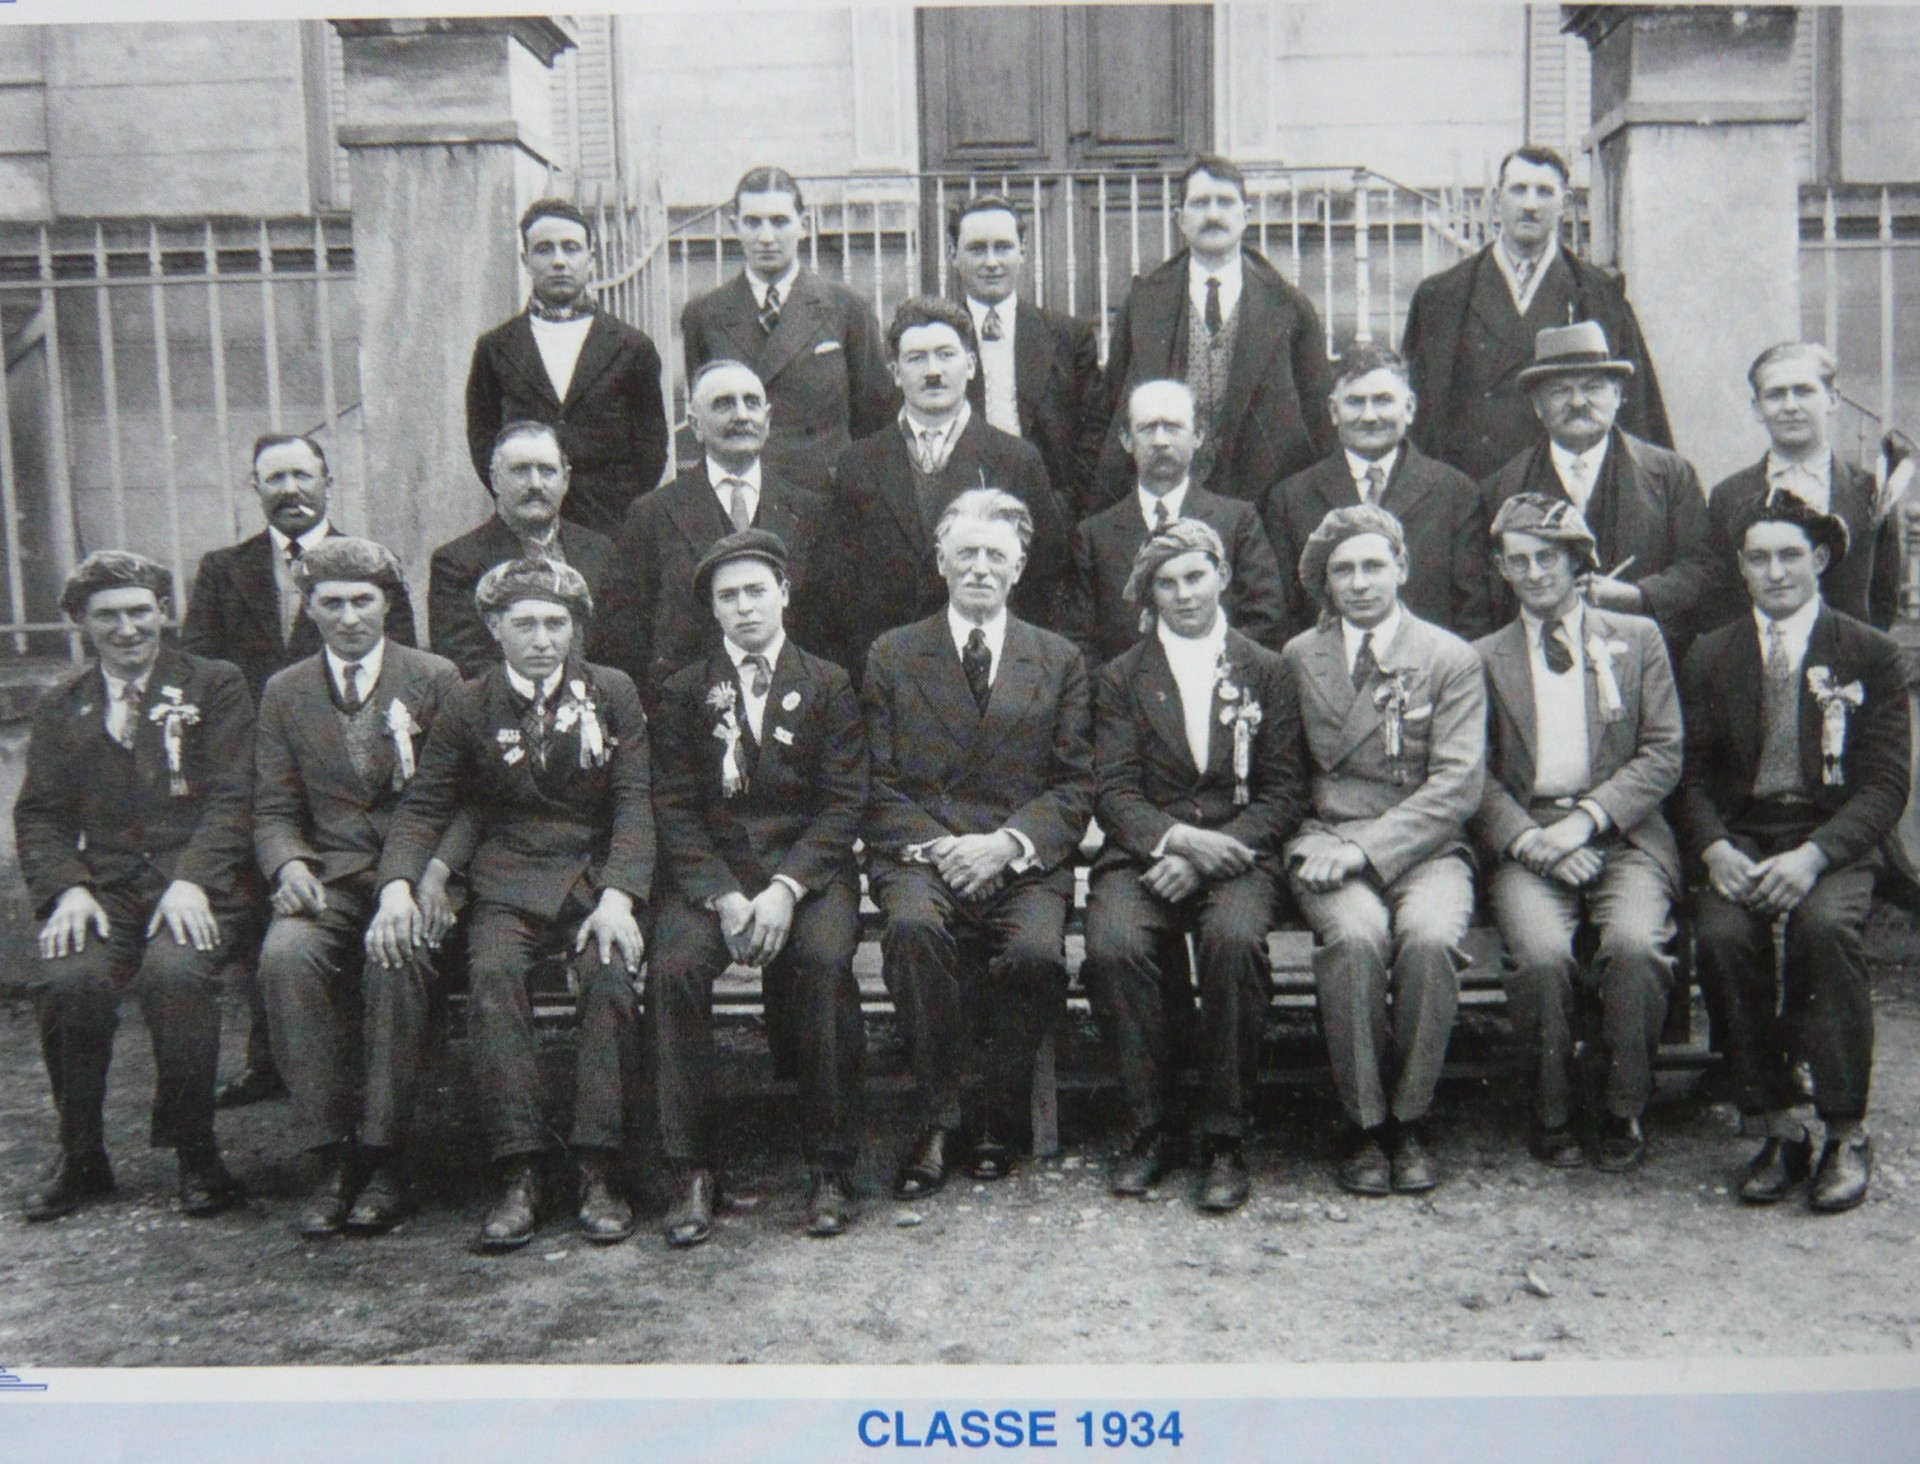 Classe 1934 Charly